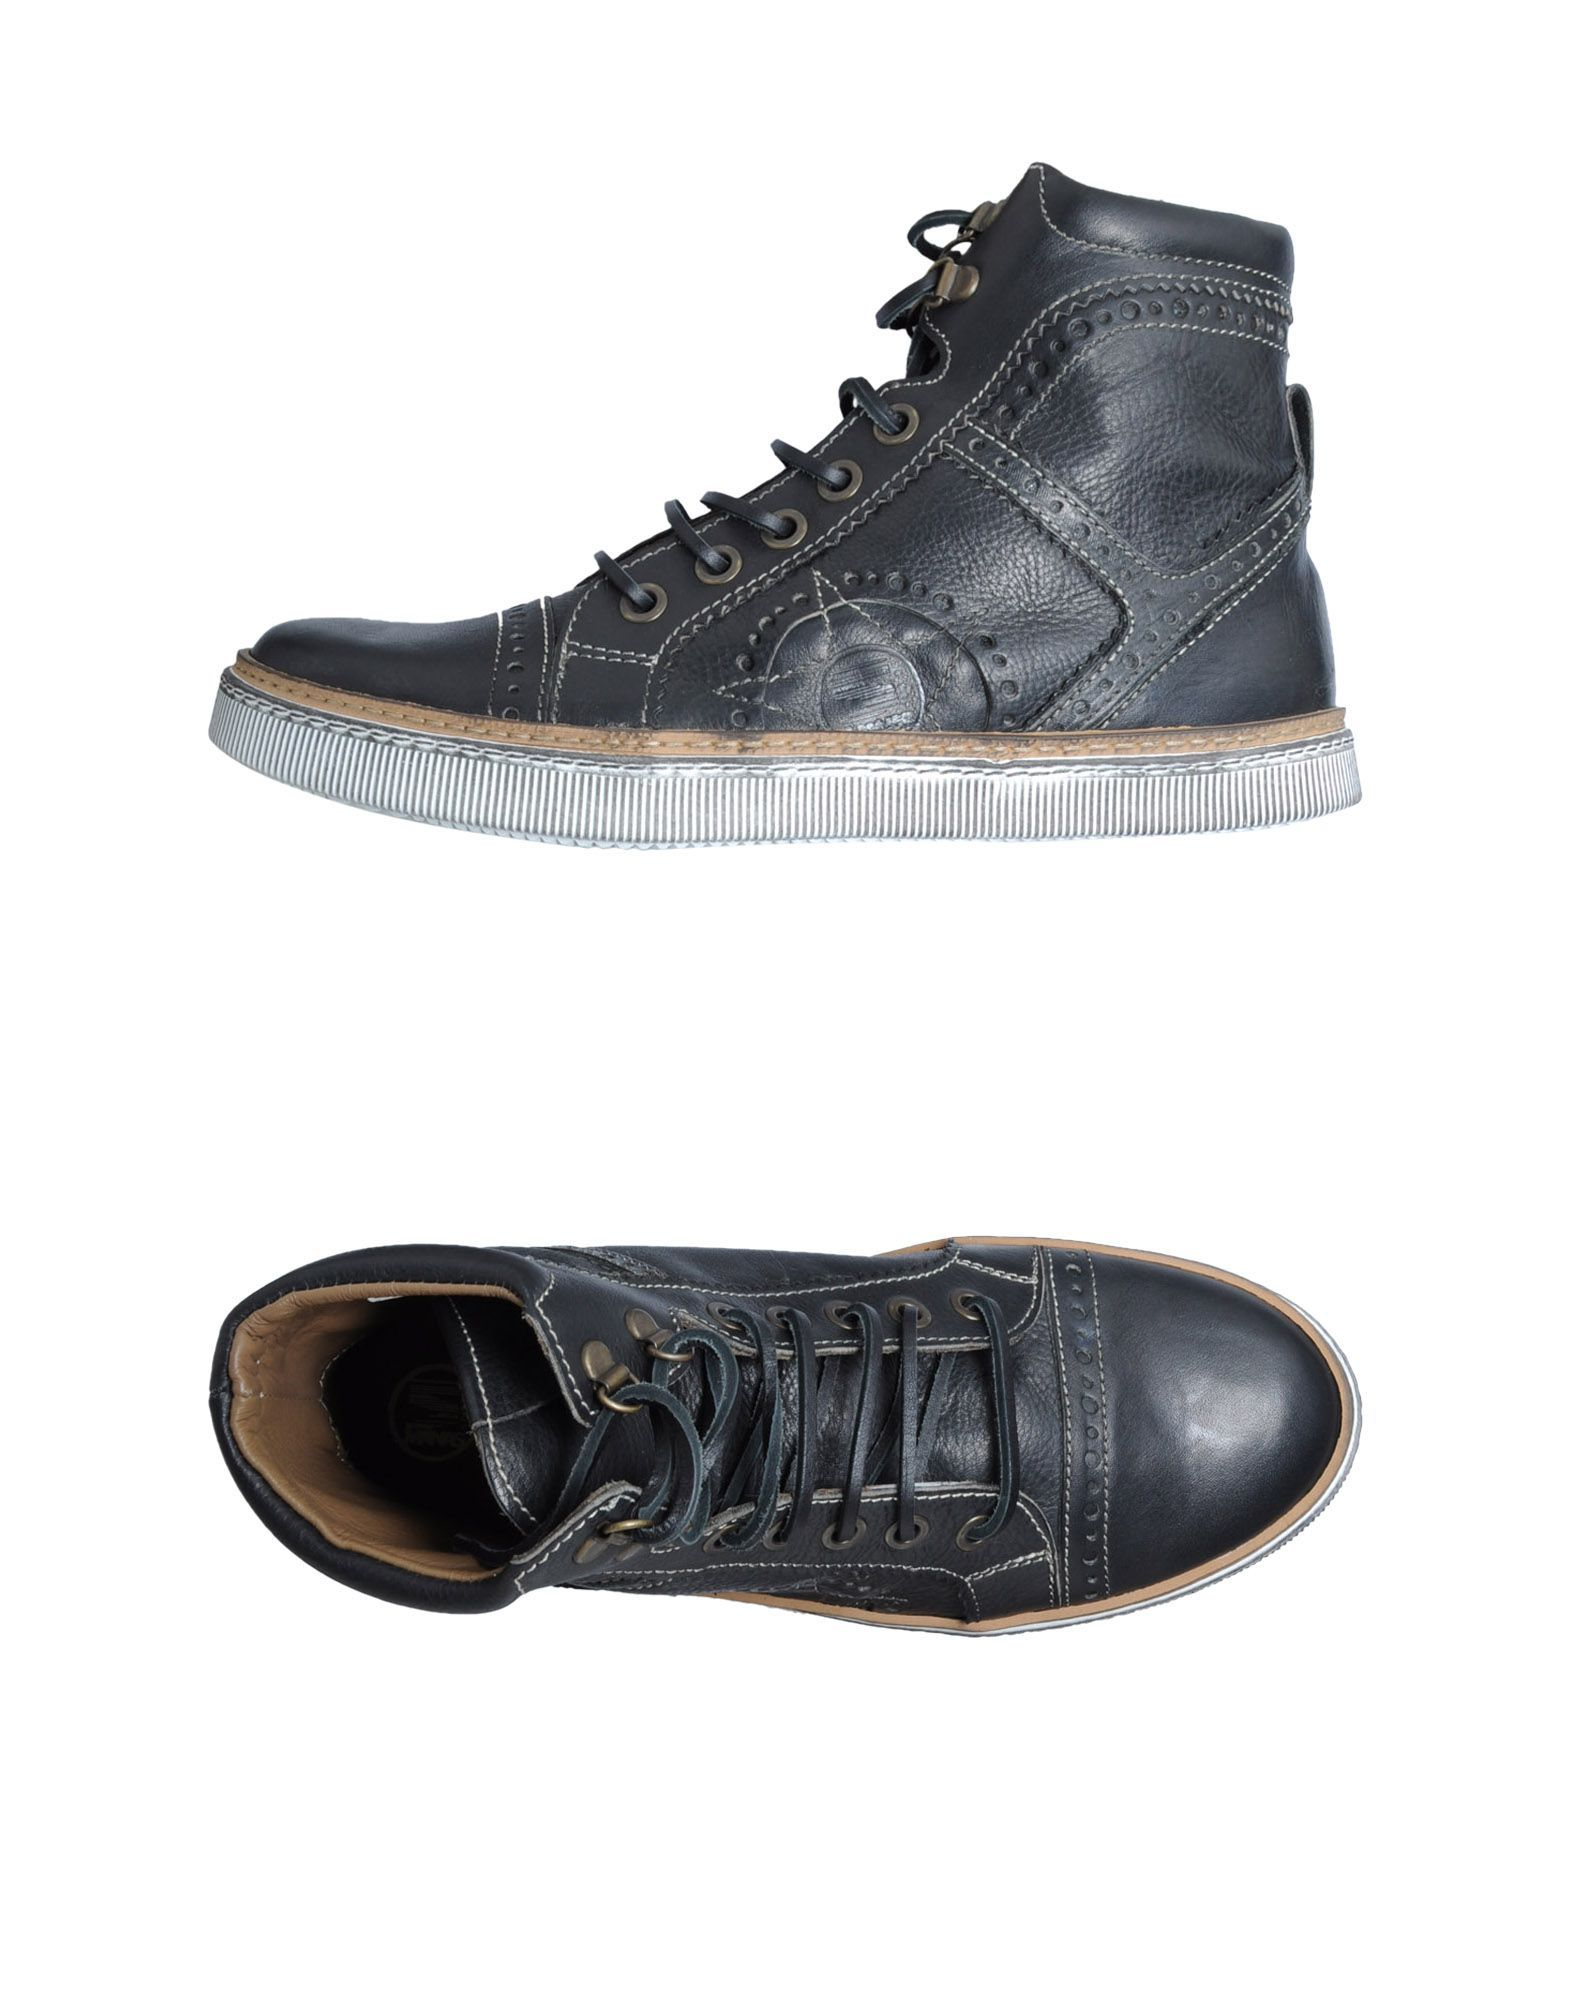 FOOTWEAR - High-tops & sneakers Manas Clearance Manchester Great Sale Cheap Sale Find Great Store Sale Online NeveD